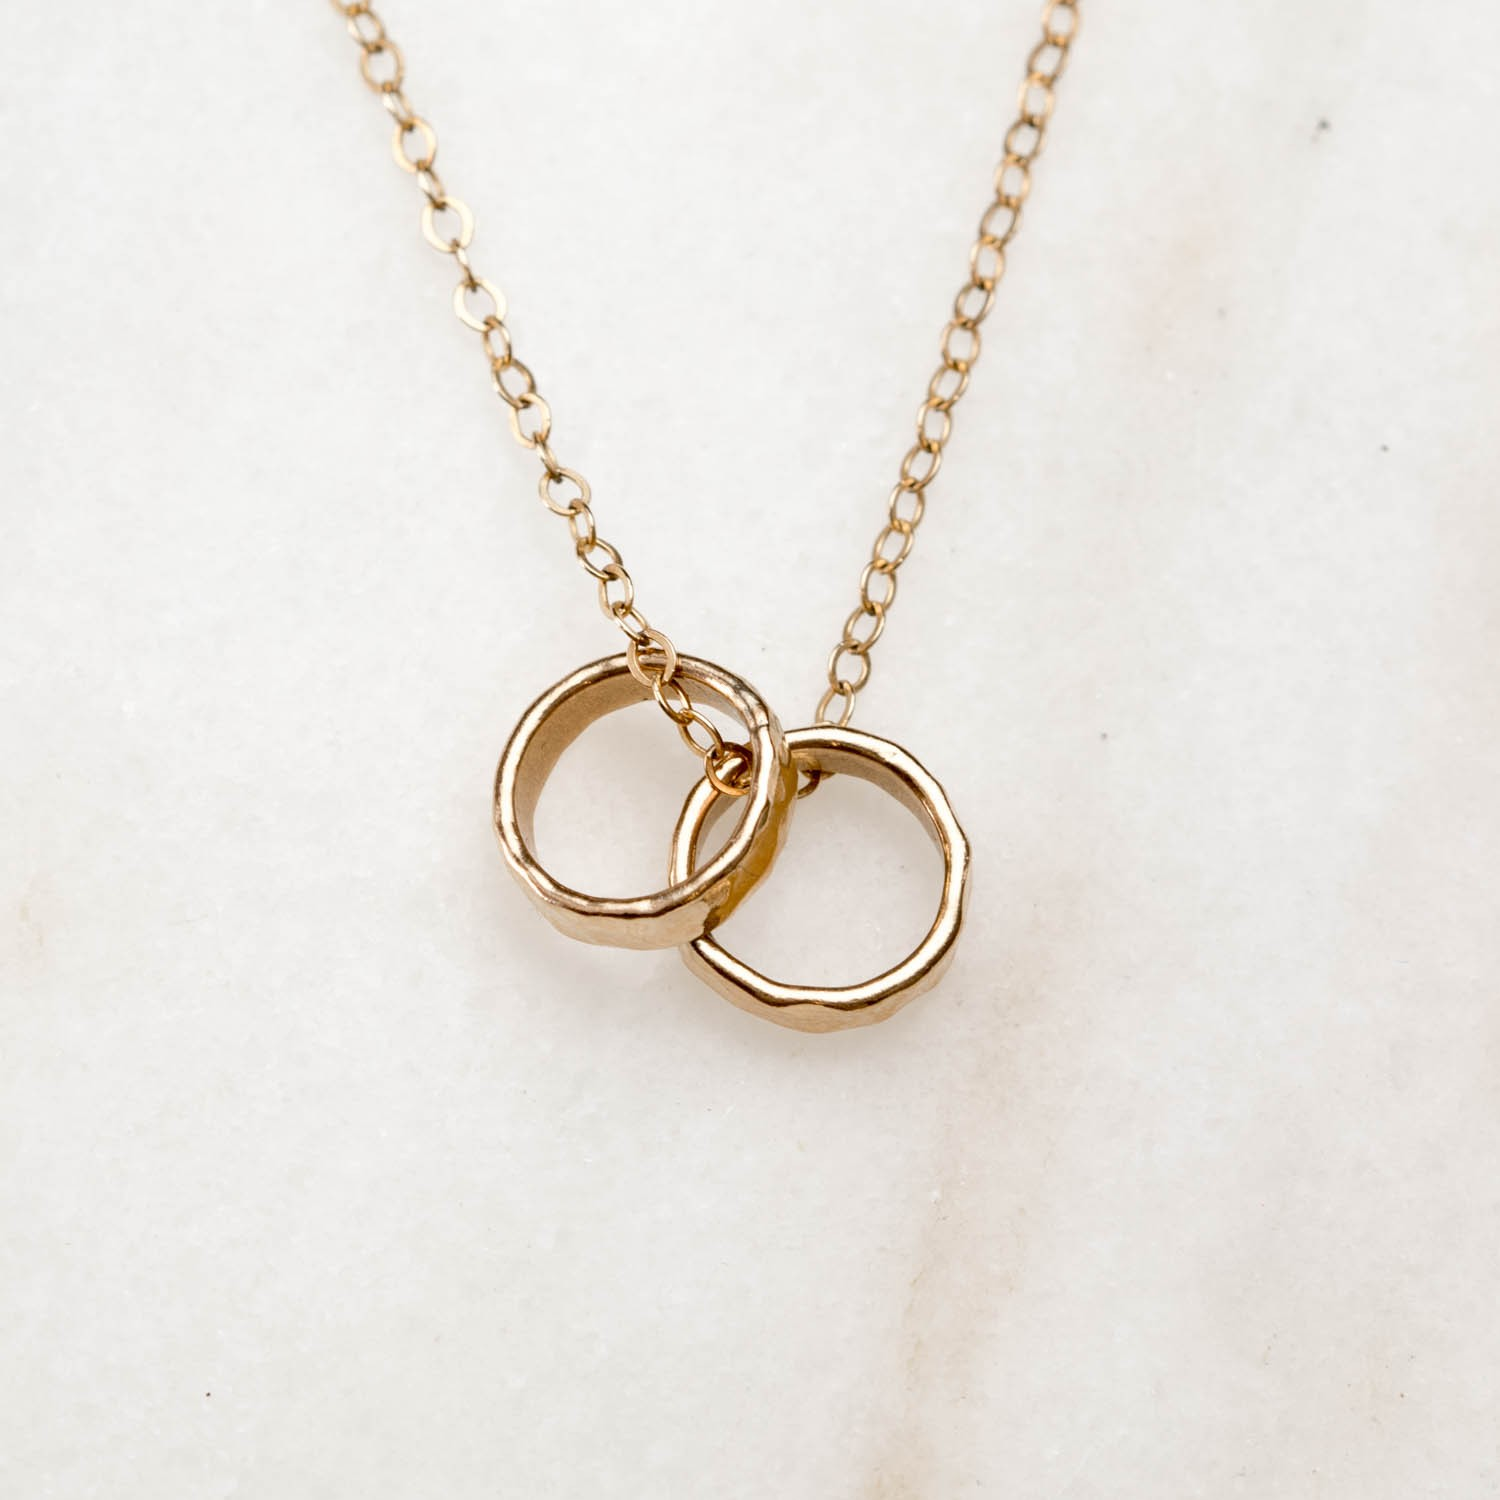 Boundless Love Necklace Gold Filled